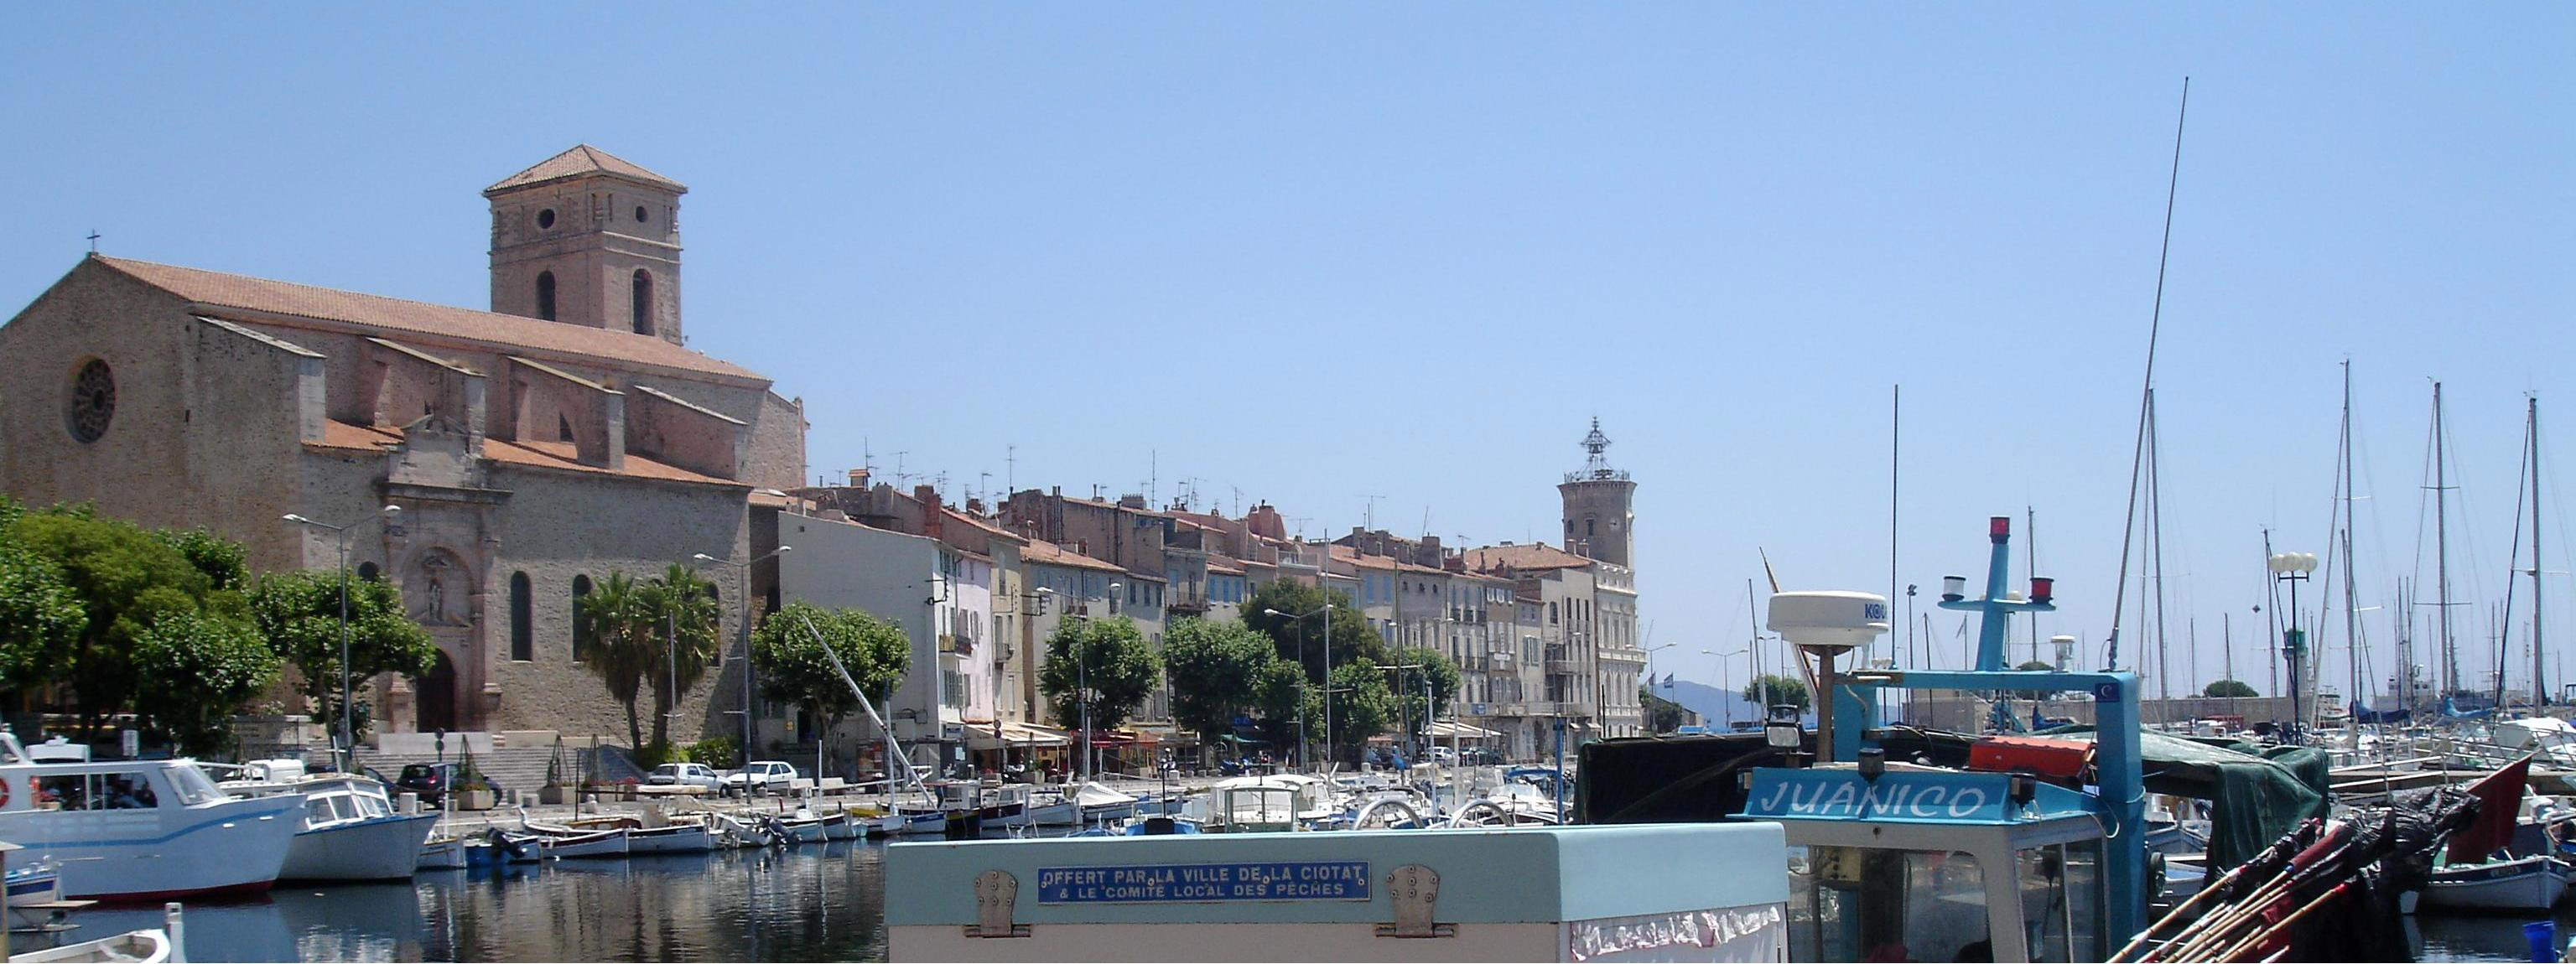 La Ciotat France  city photo : La Ciotat Wikipedia, the free encyclopedia